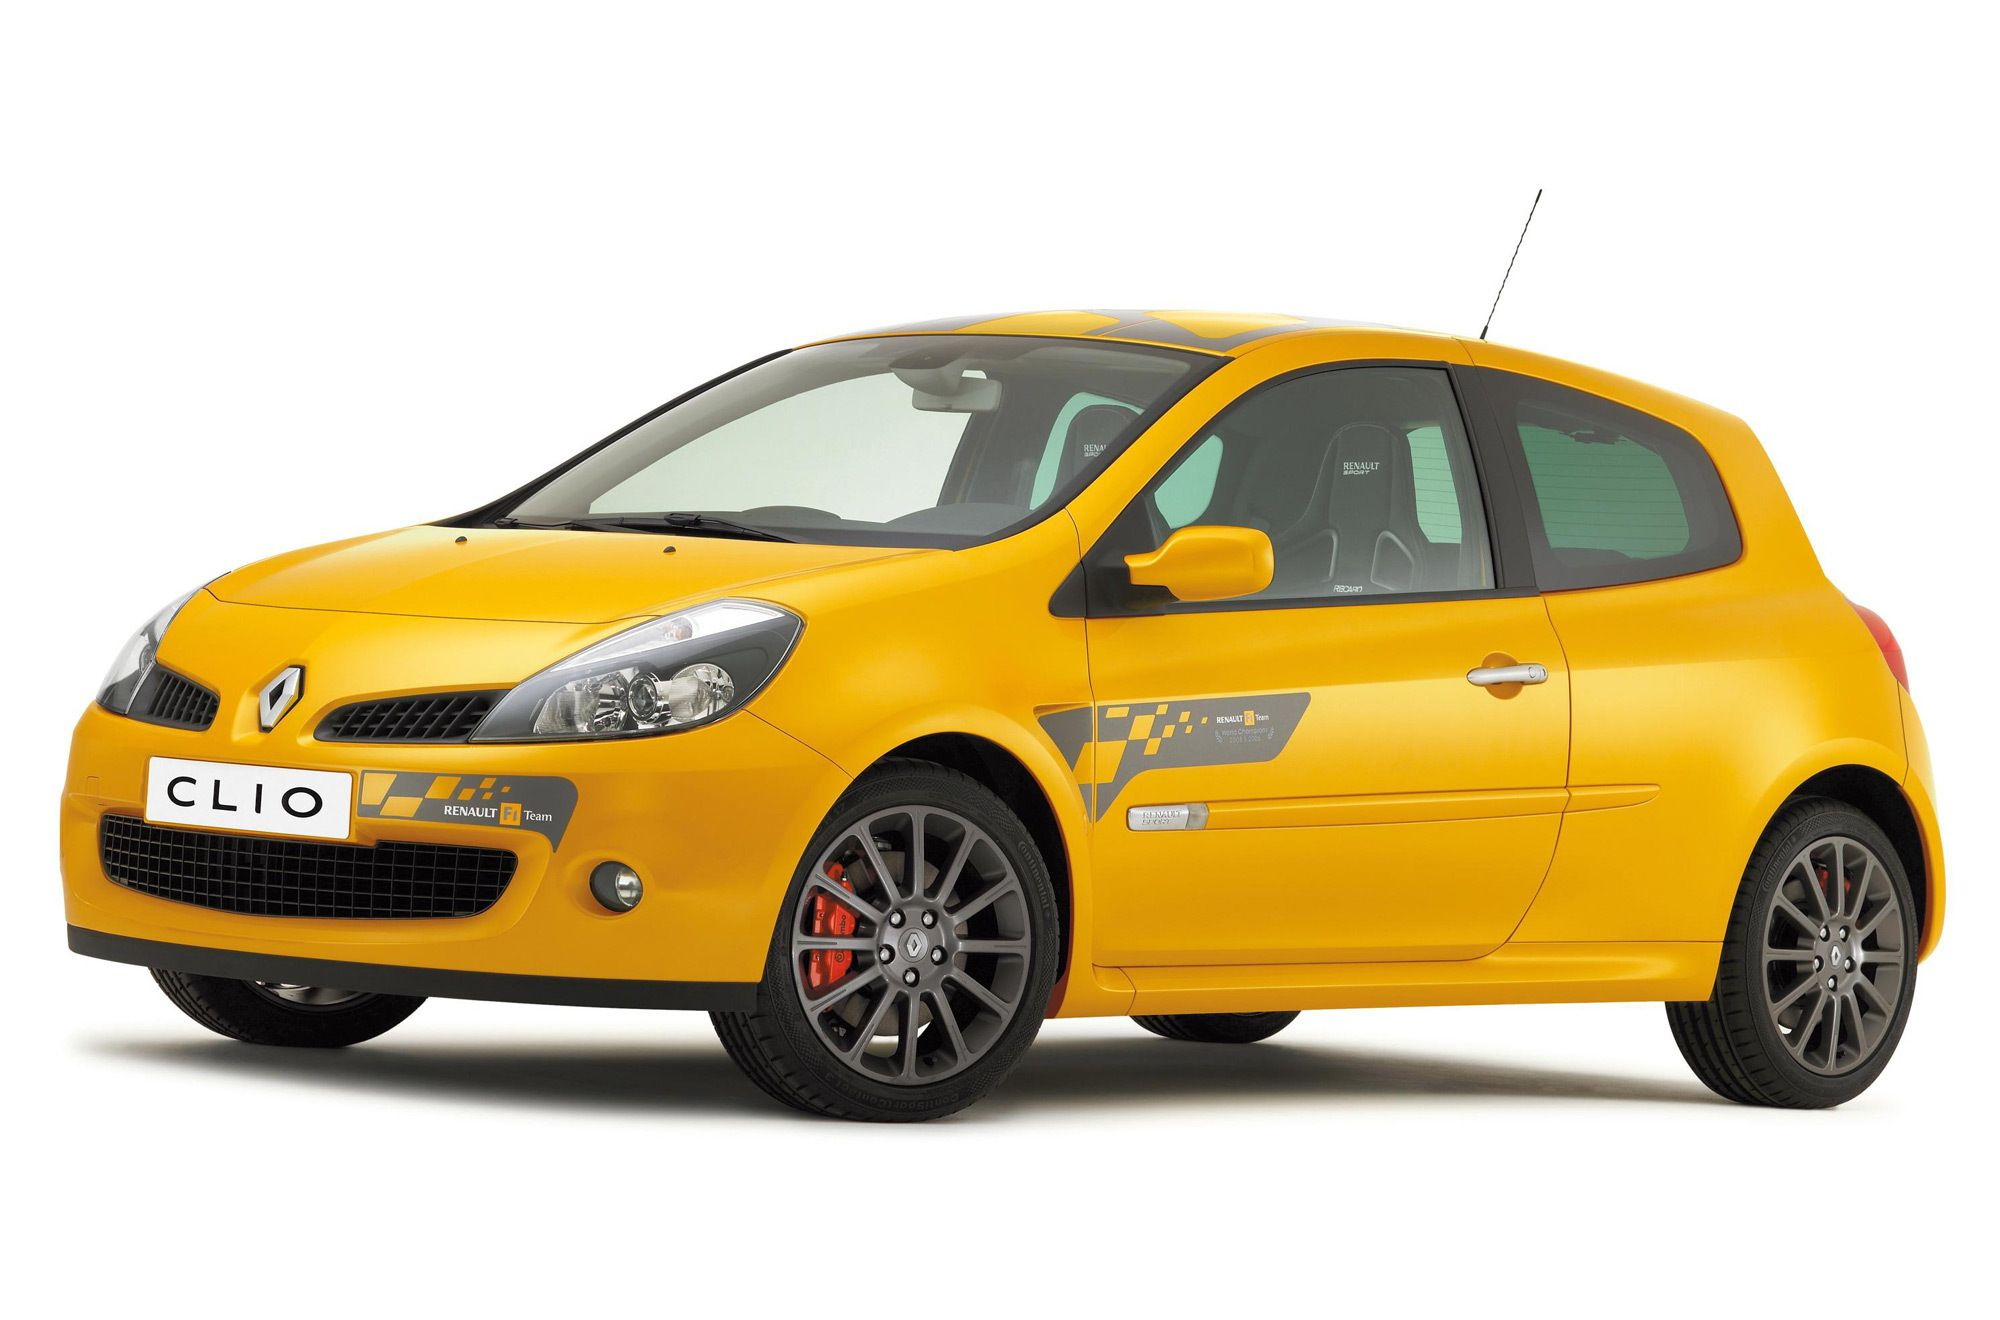 clio renault sport 197 f1 team r27 owned after the 182 mine was in albi blue it was good but. Black Bedroom Furniture Sets. Home Design Ideas